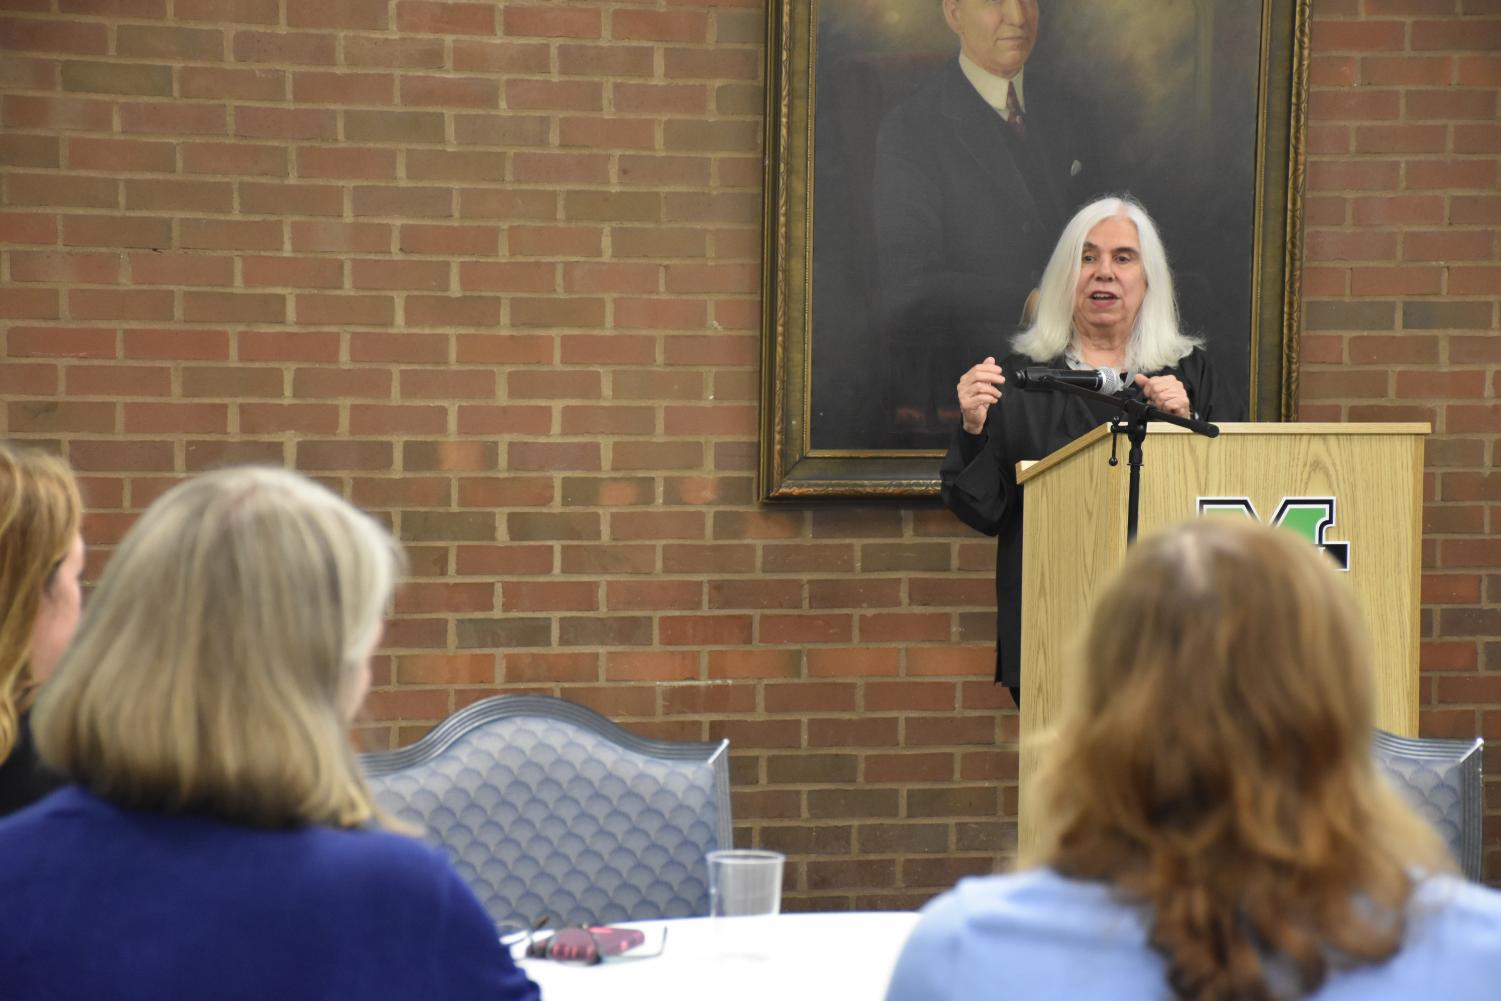 Virginia Valian lecturing to students, faculty and staff during the 5 p.m. session on Monday, Sept. 10 in the Shawkey Dining Room. Valian  tailored the session to Marshall's campus, and she gave advice on how students can utilize their resources to succeed.